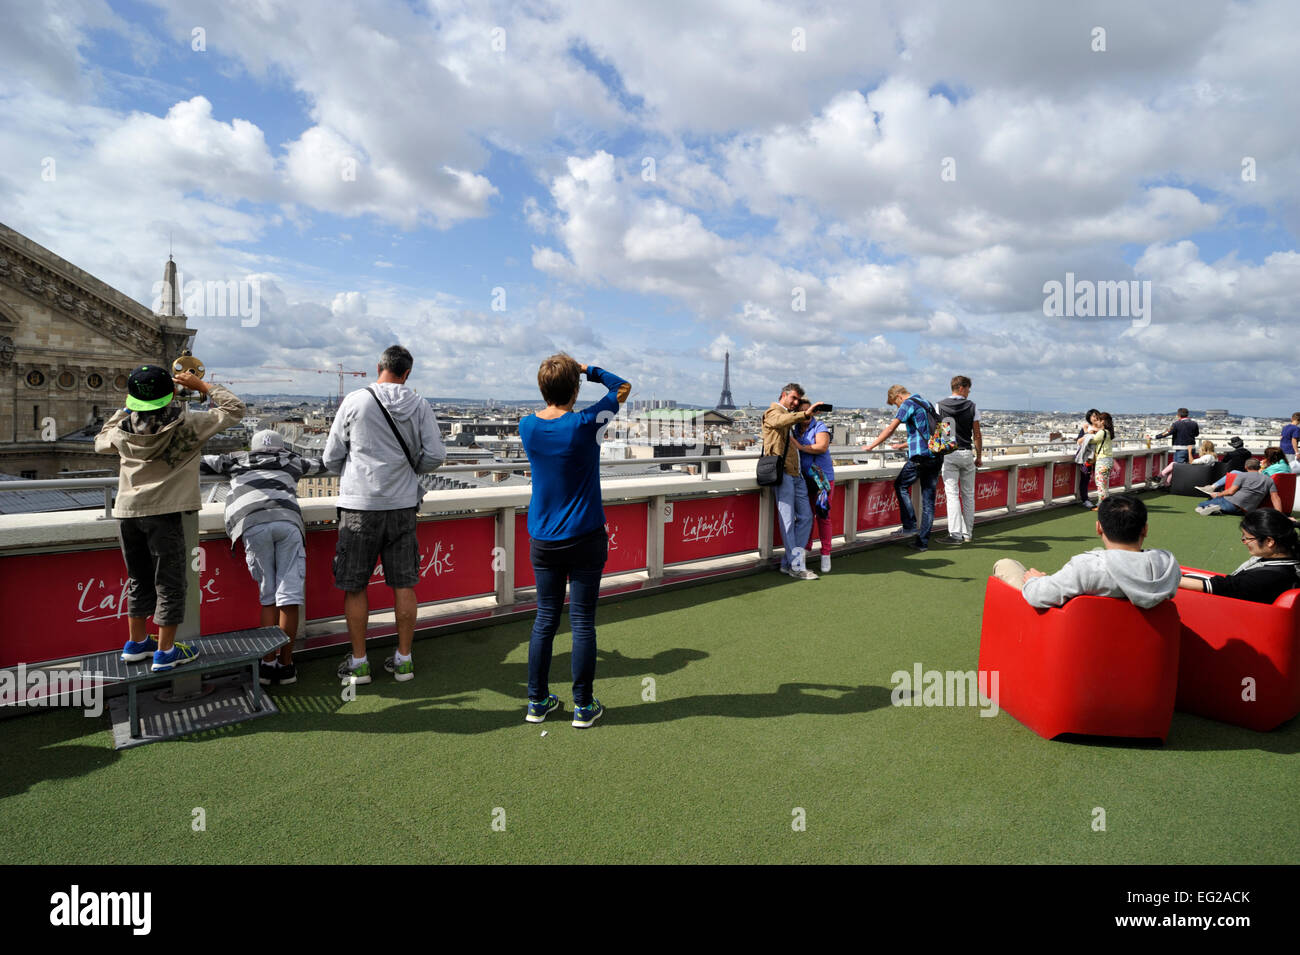 Paris, galeries lafayette, roof garden Photo Stock